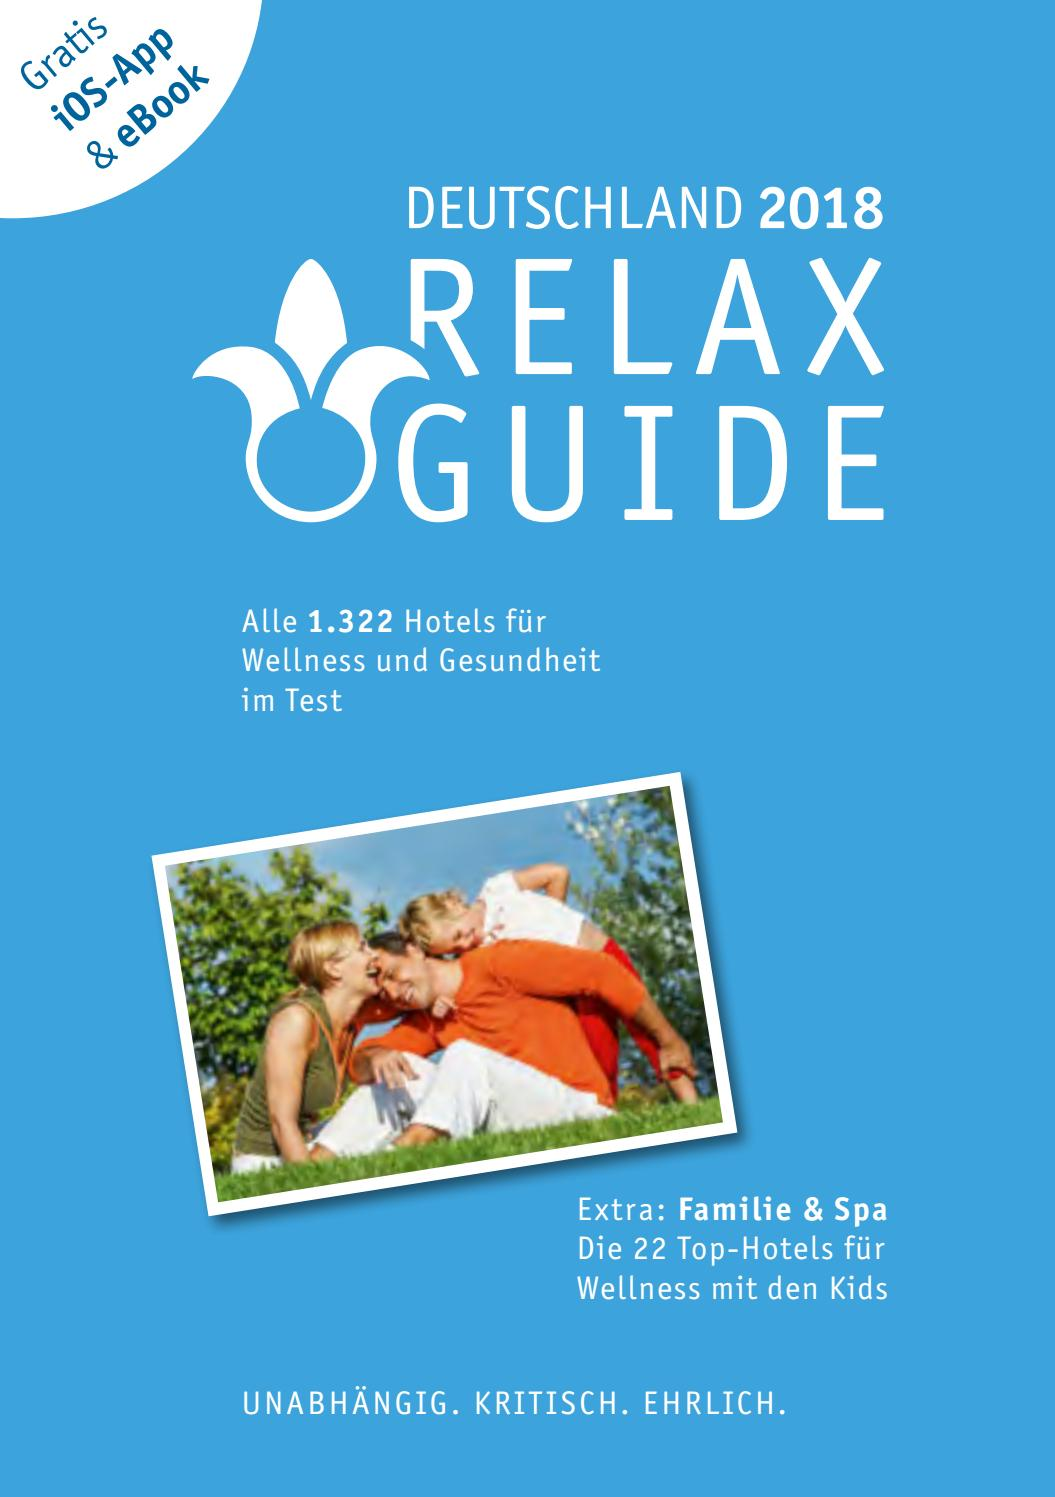 RELAX Guide Ebook 2018 DE by Werner Medien GmbH - issuu